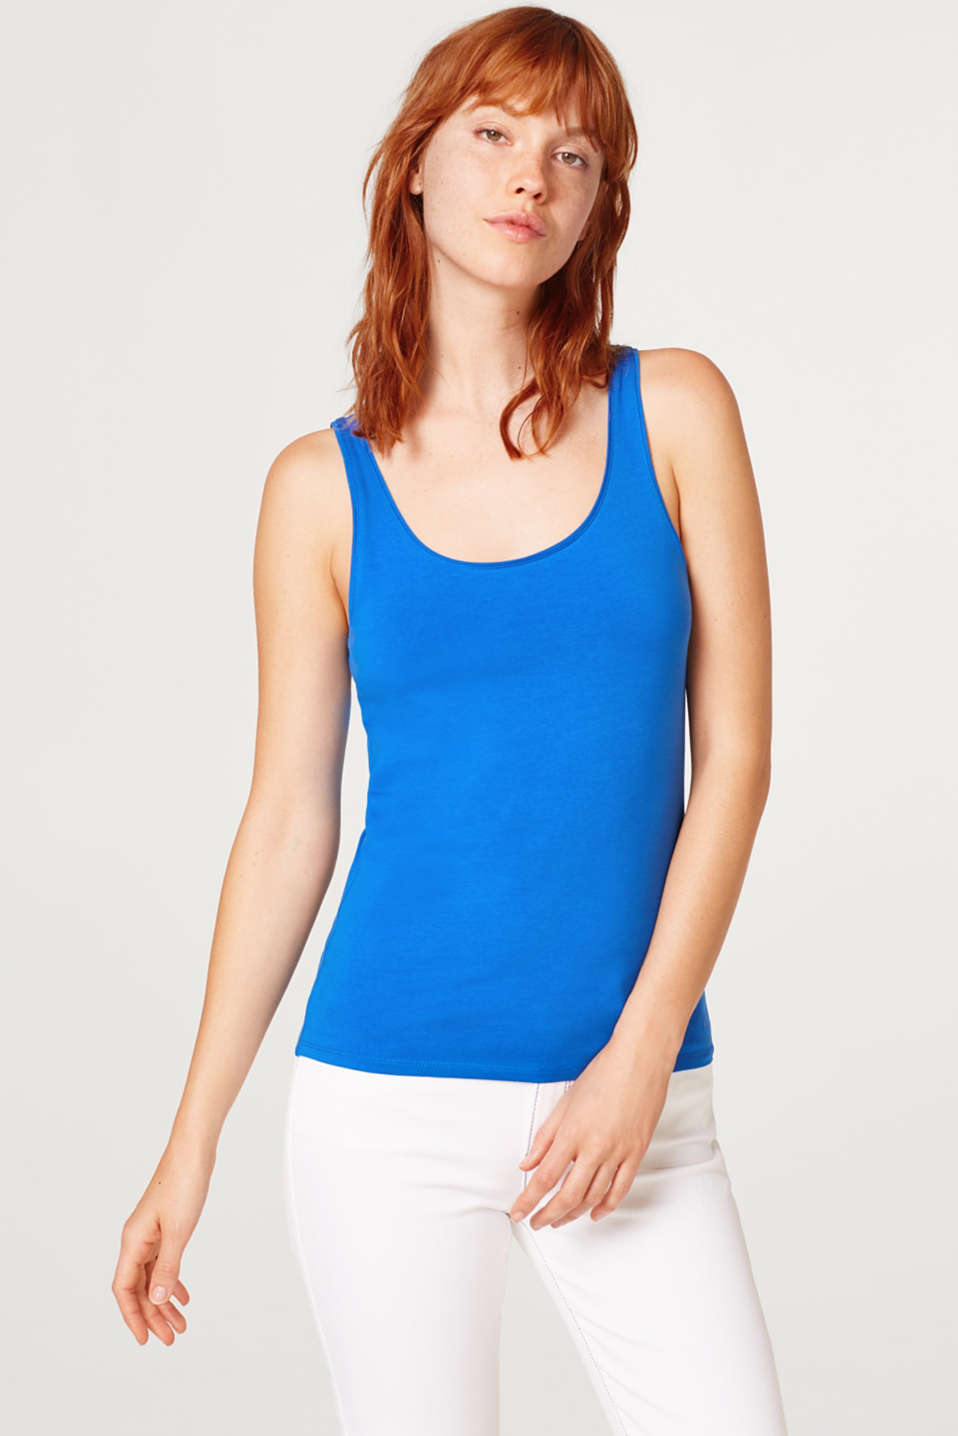 edc - Basic stretch top, organic cotton